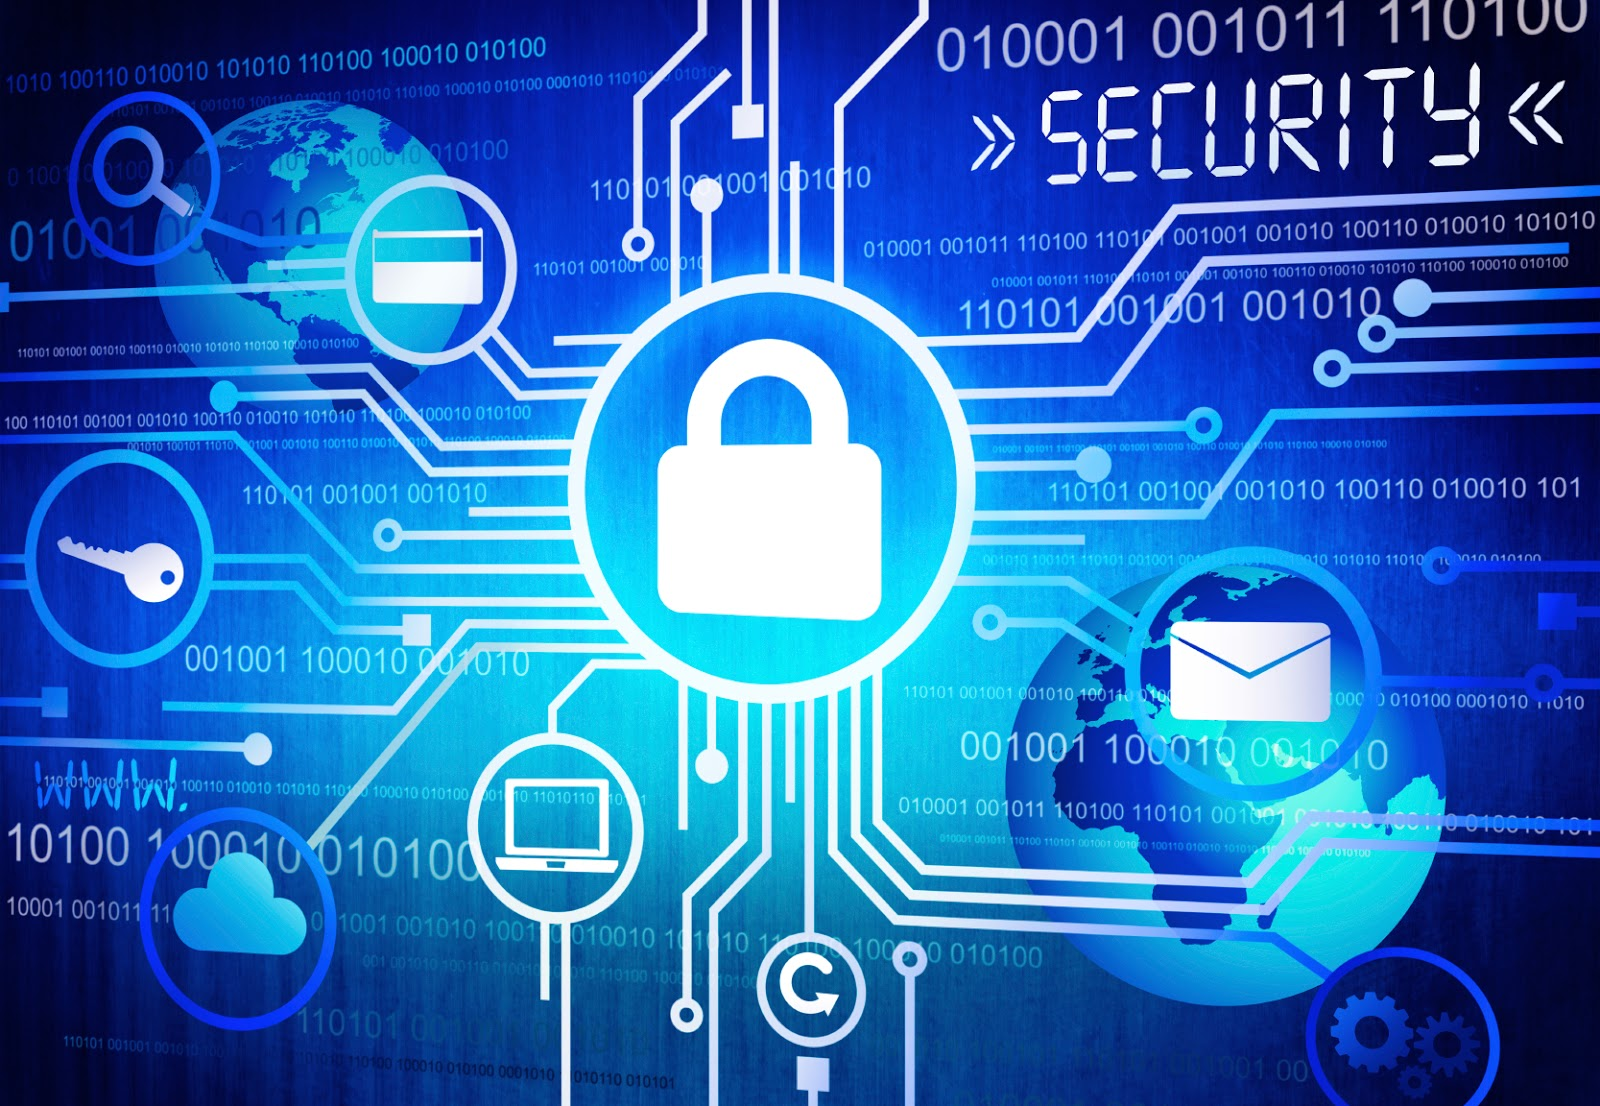 Dealing With Cyber Security As A Small Business